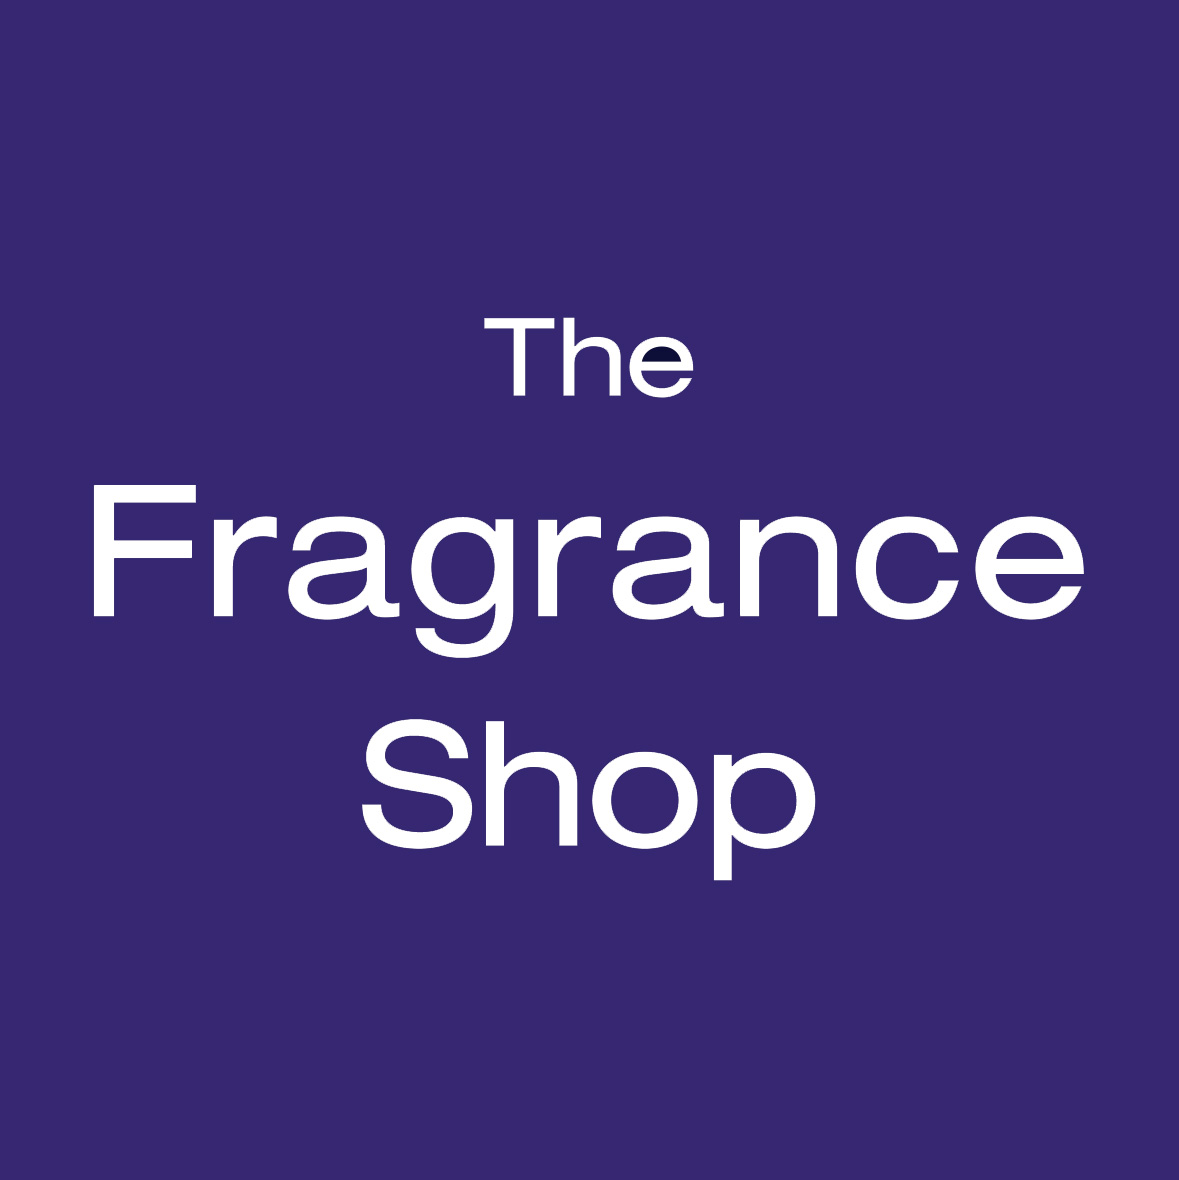 thefragranceshop.co.uk with The Fragrance Shop Discount Codes & Promo Codes